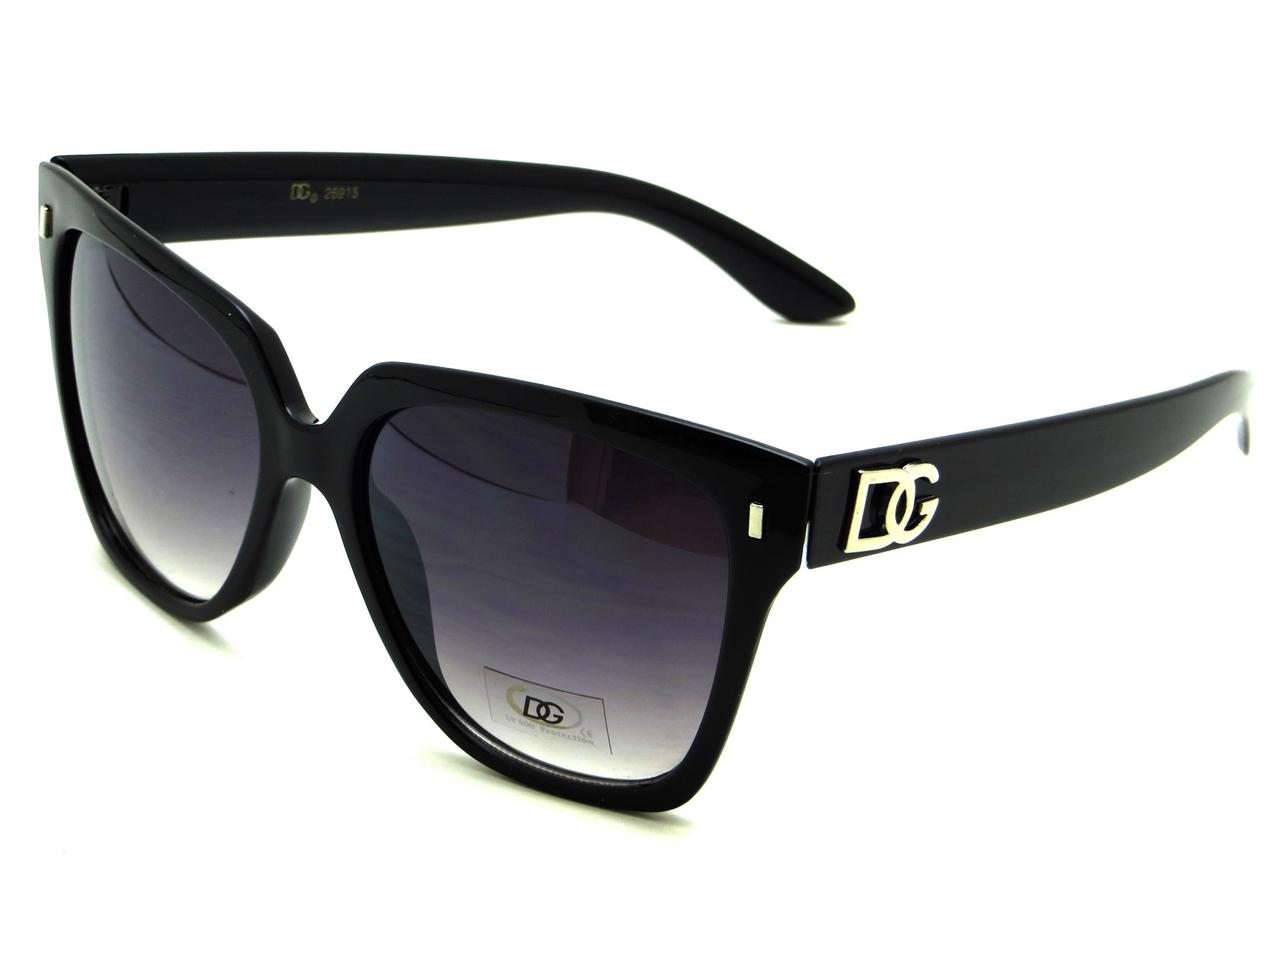 ... u0026gt; Womenu0026#39;s Accessories u0026gt; Sunglasses u0026 Fashion Eyewear u0026gt; Sunglasses